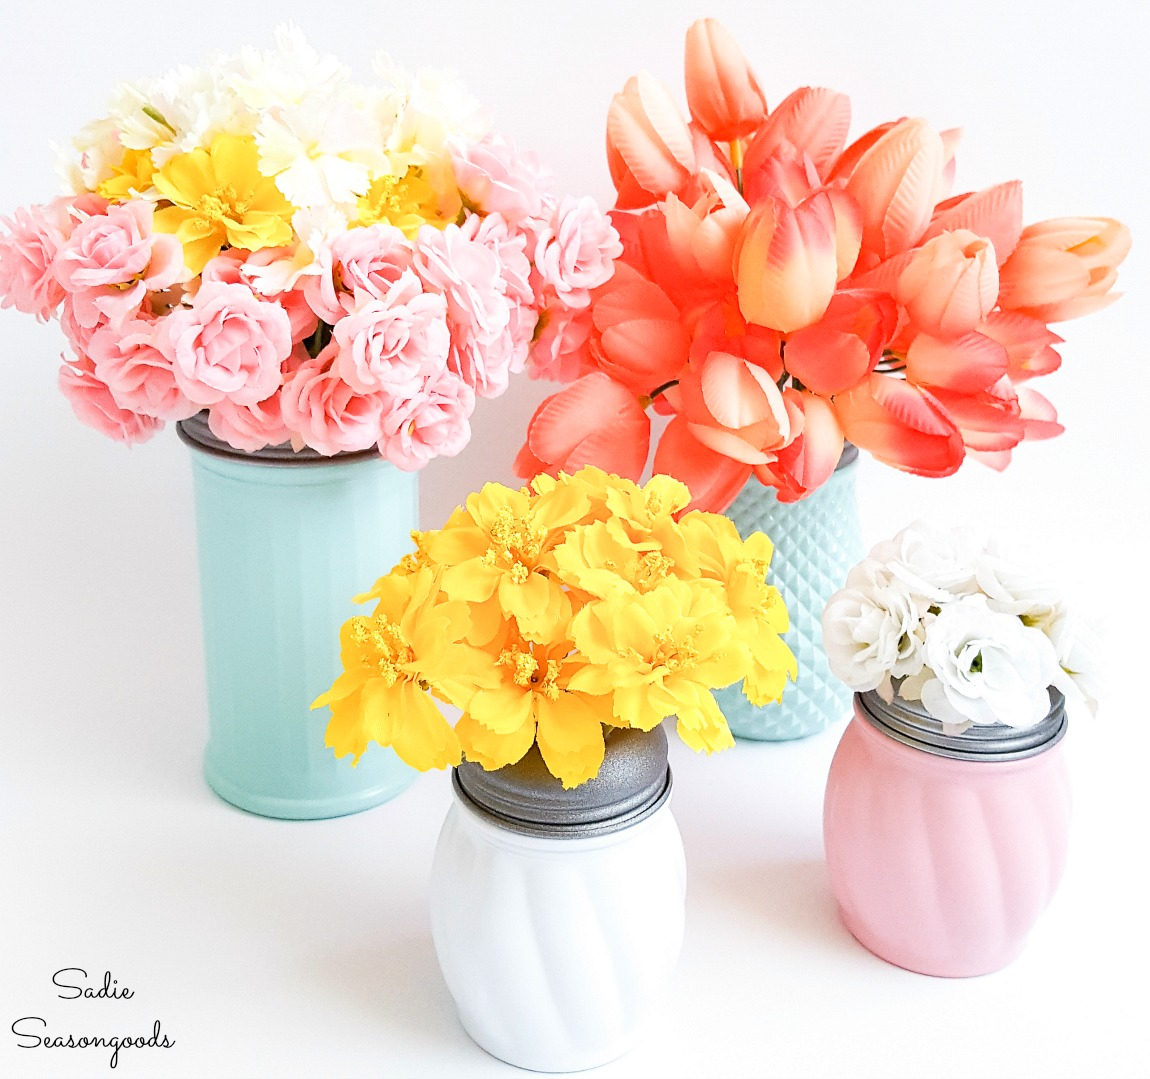 Upcycling the cheese shakers into pink milk glass with a flower frog